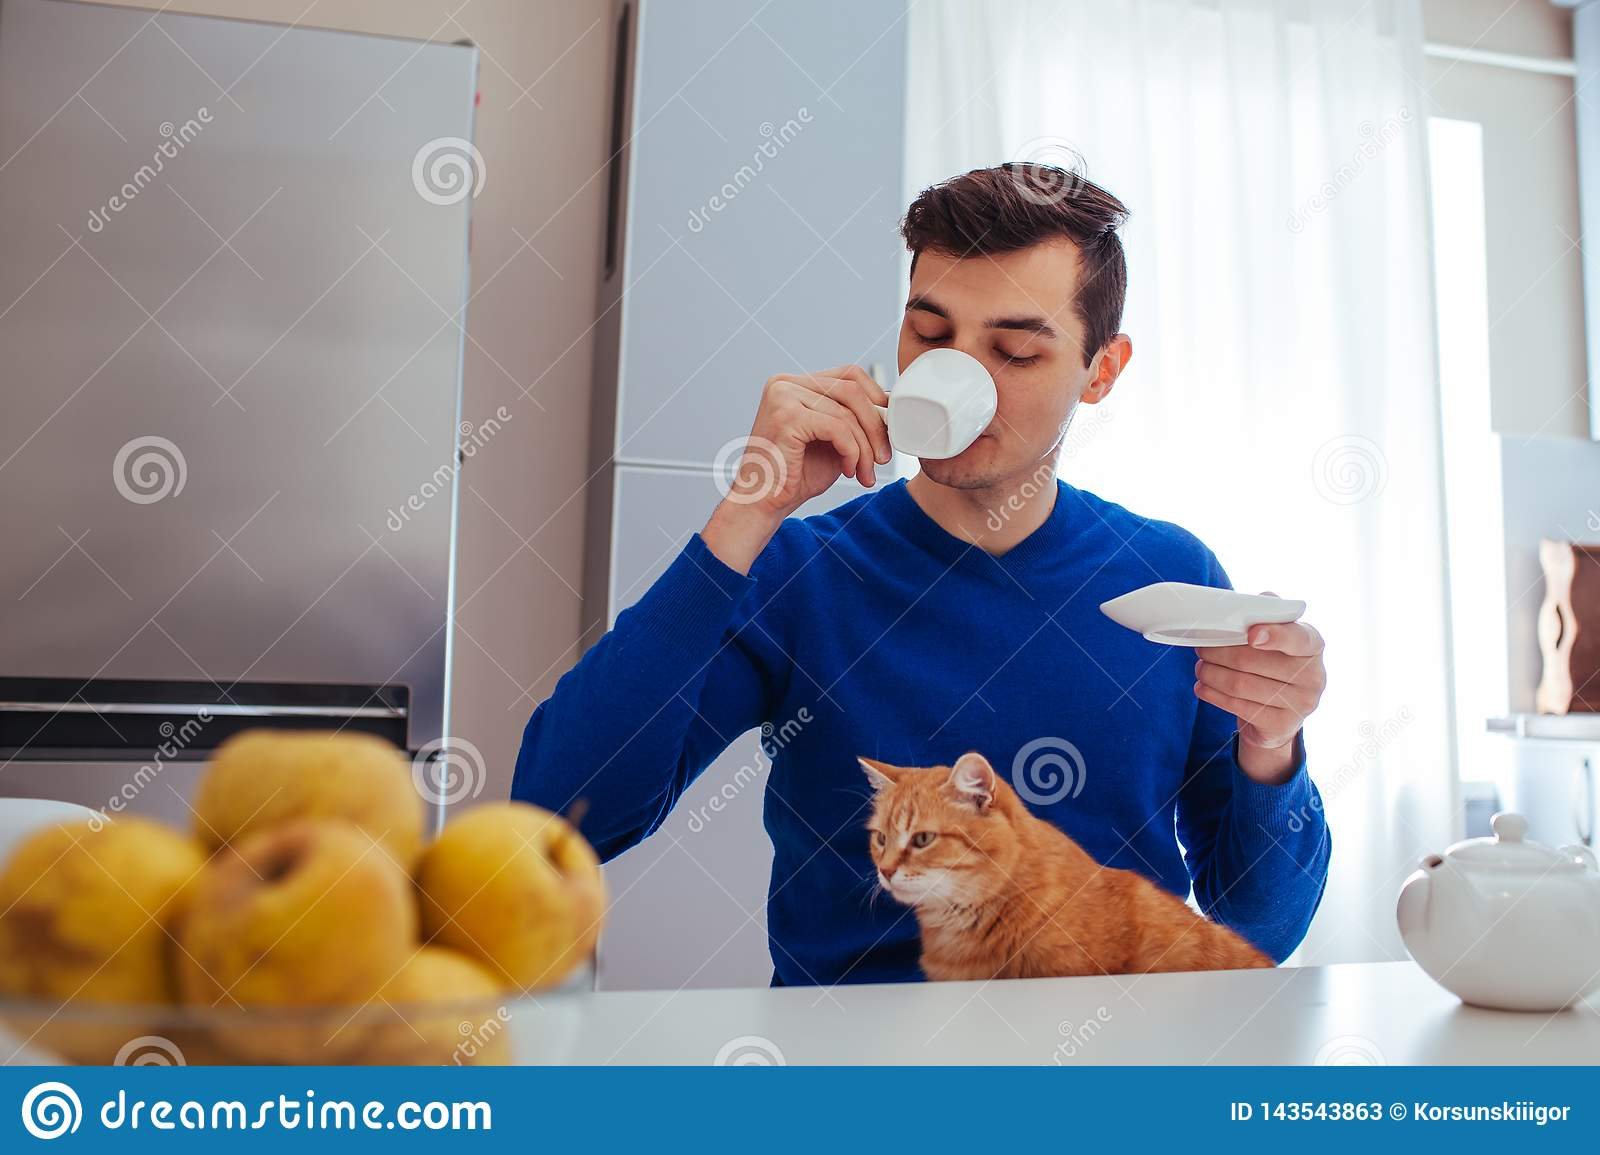 Portrait of a young man drinking tea with a cat on kitchen